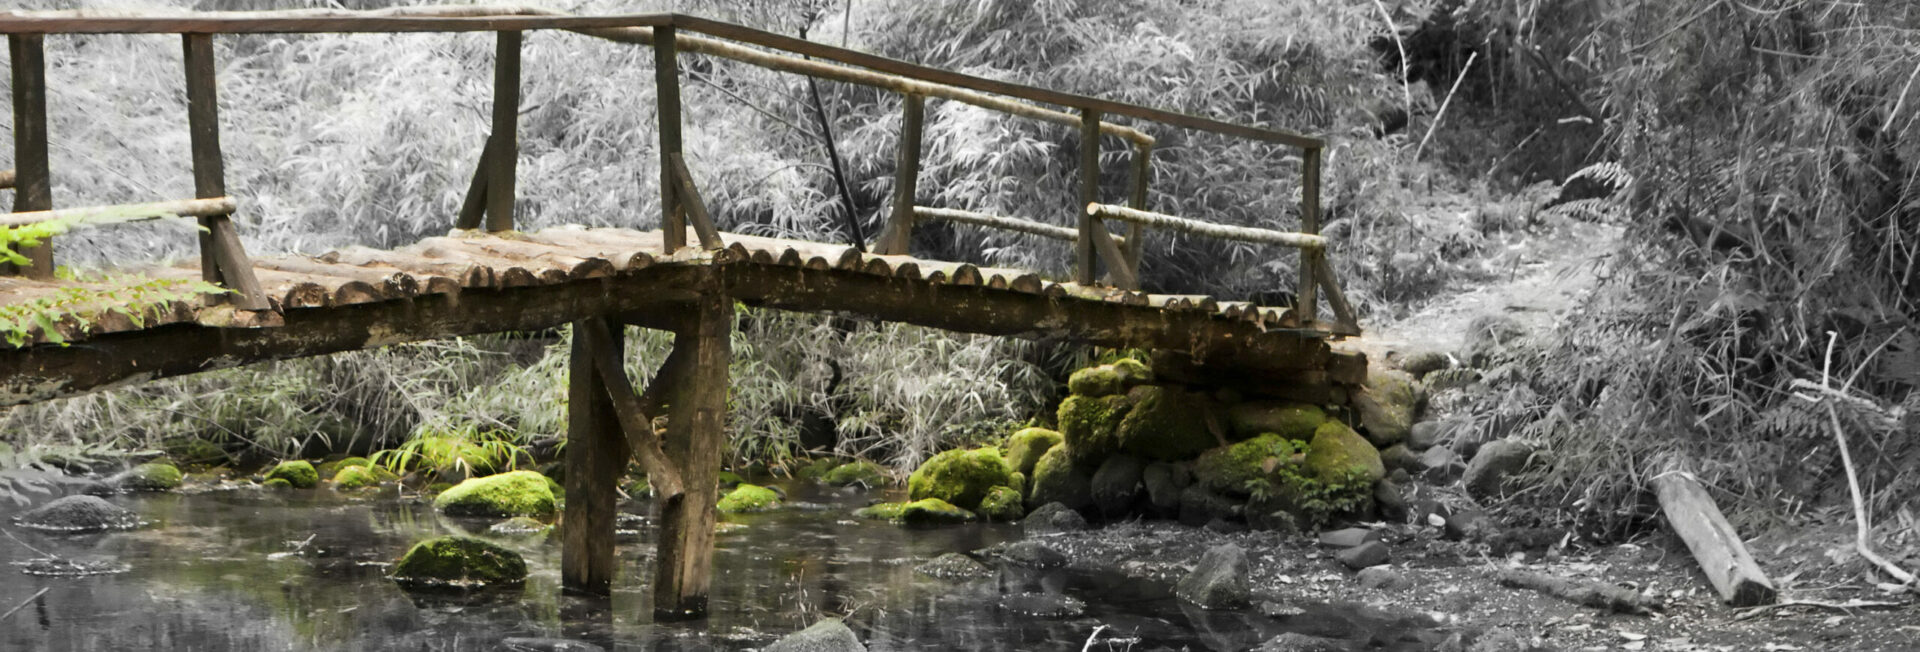 Small wooden bridge over a stream in a forest